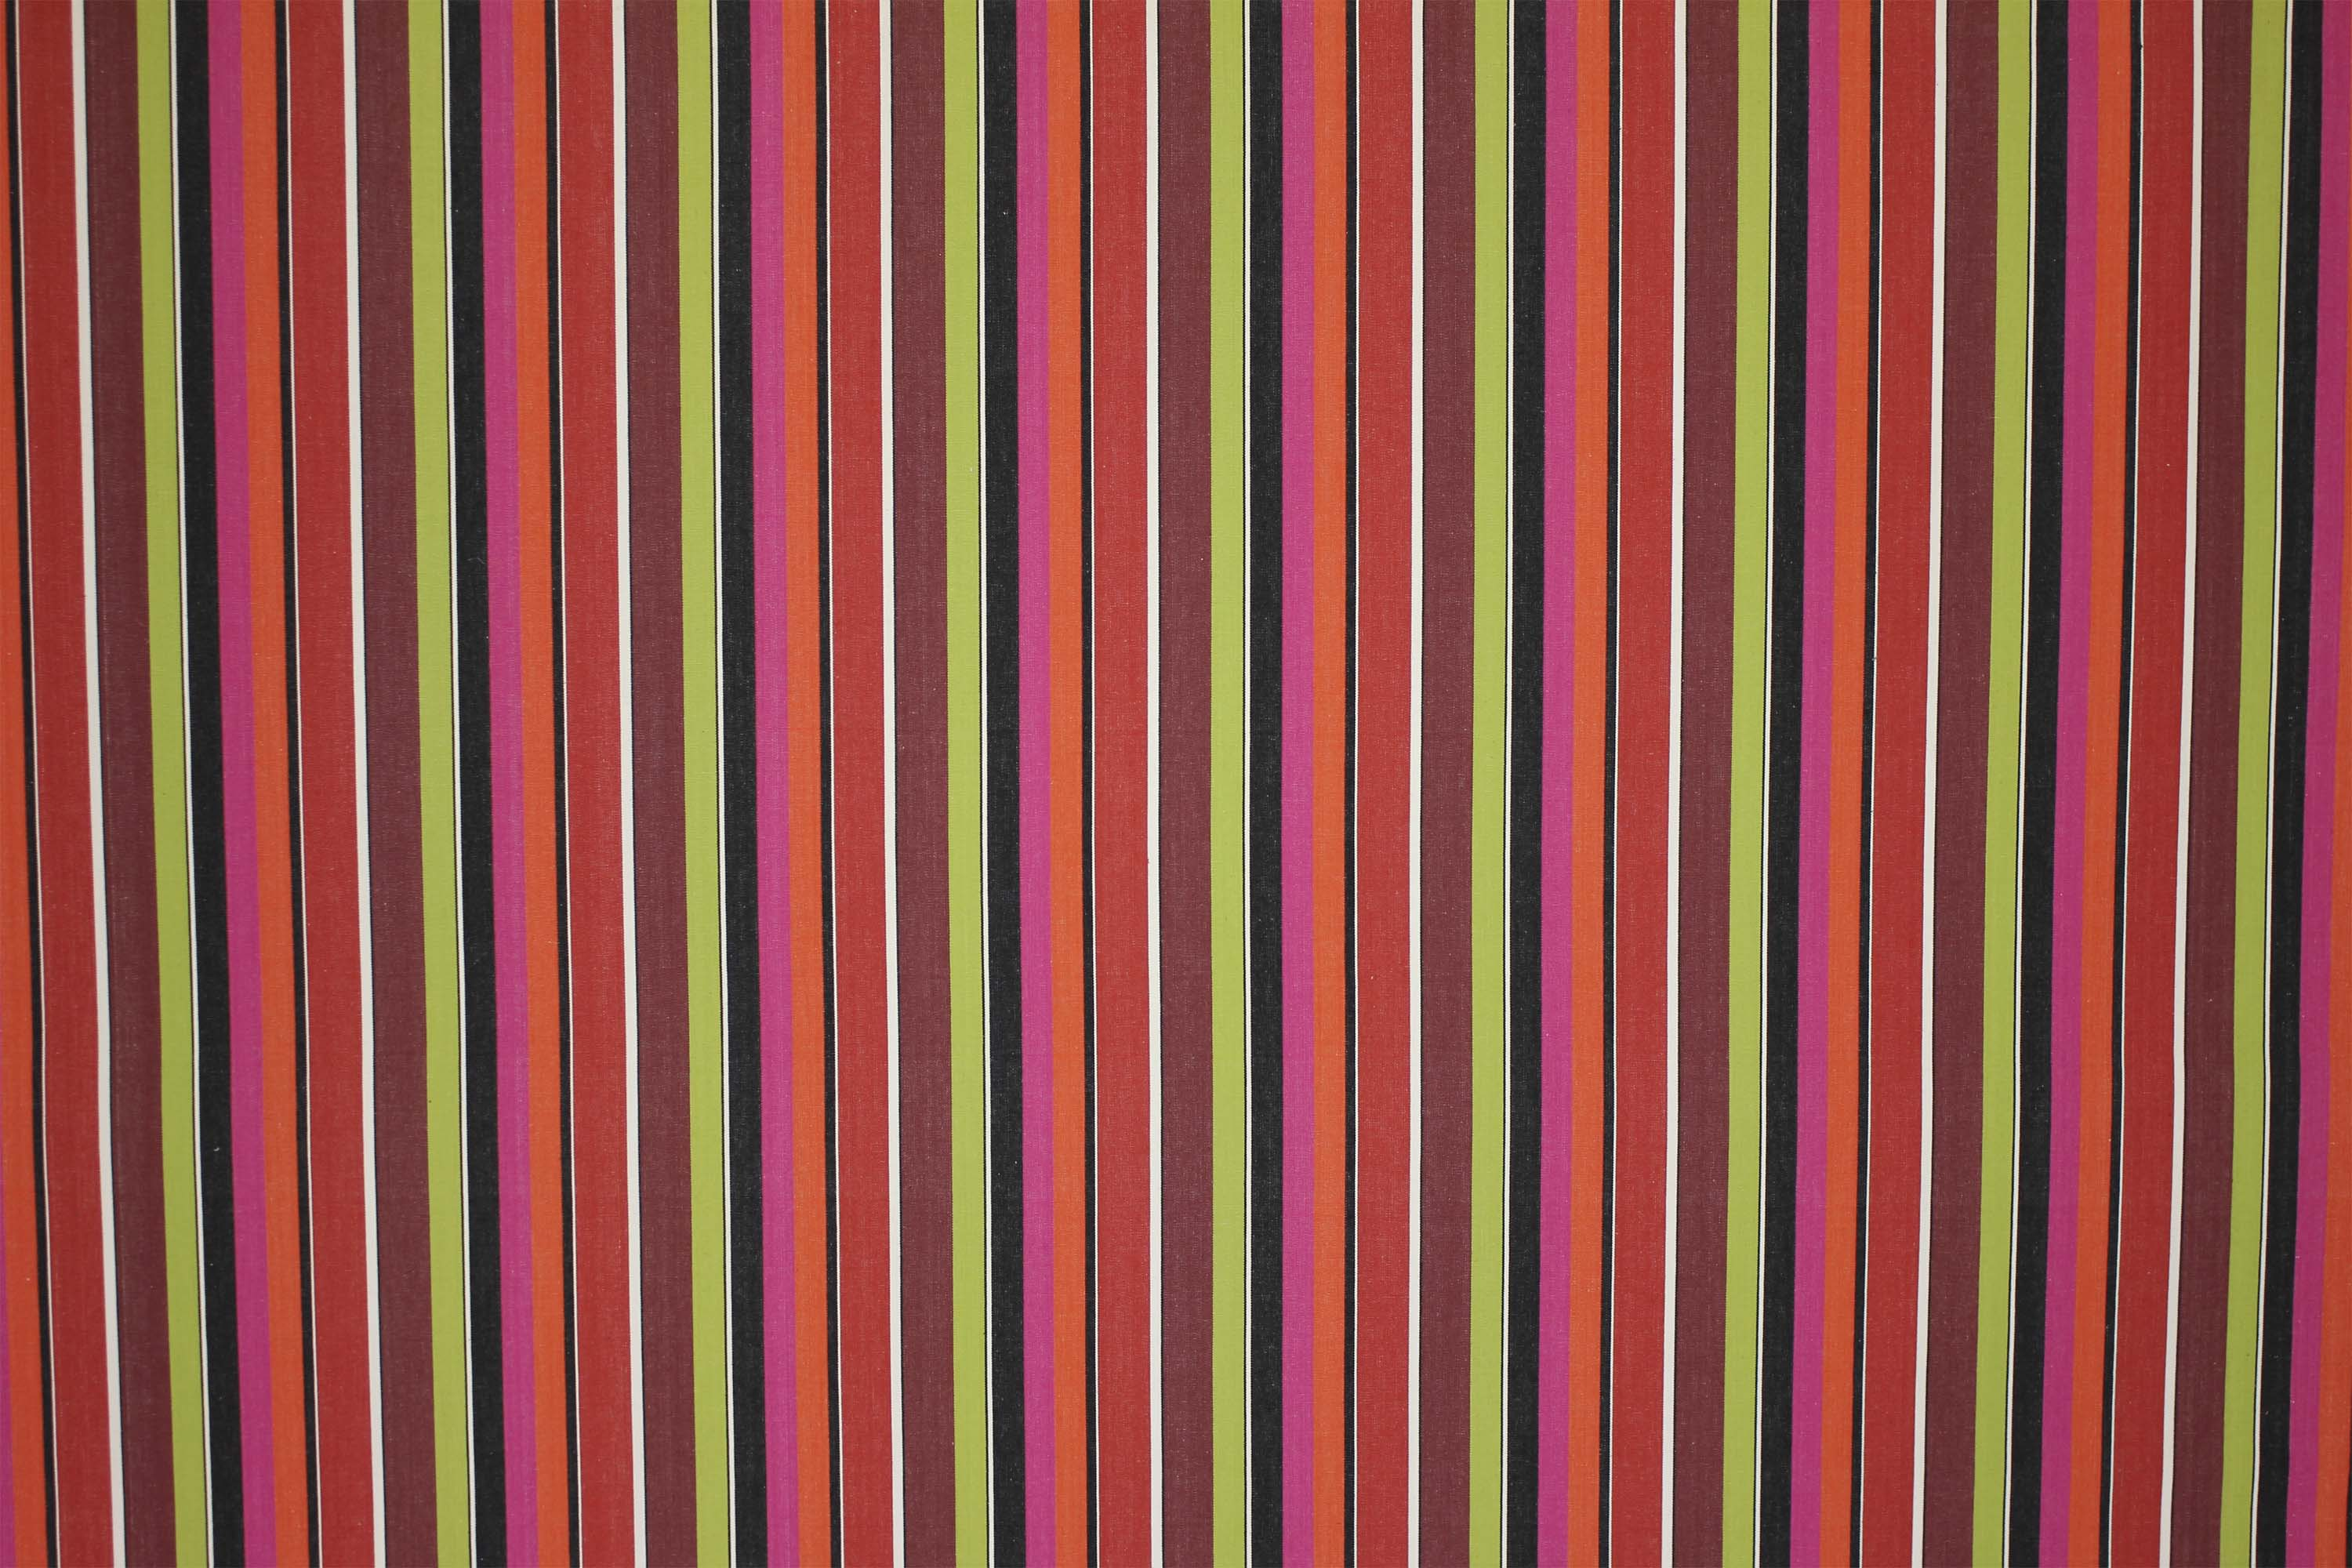 Fuschia Striped Fabrics | Stripe Cotton Fabrics | Striped Curtain Fabrics | Upholstery Fabrics  Hunting Stripes